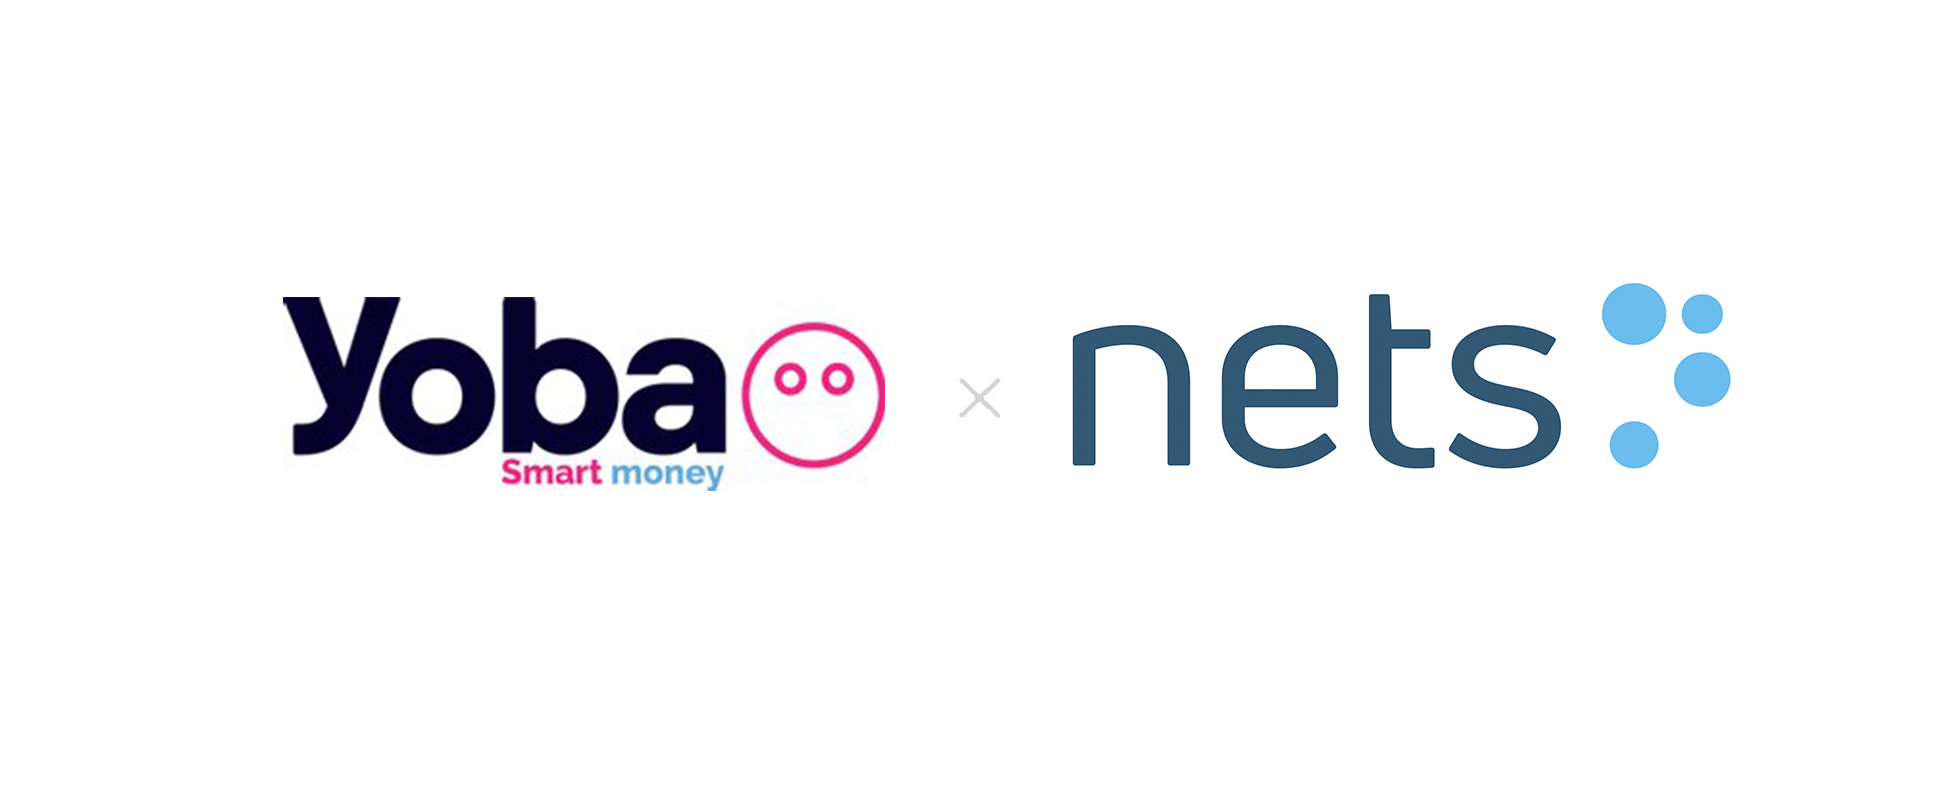 Yoba Smart Money Partners with Nets for Its New SME Payment Solution